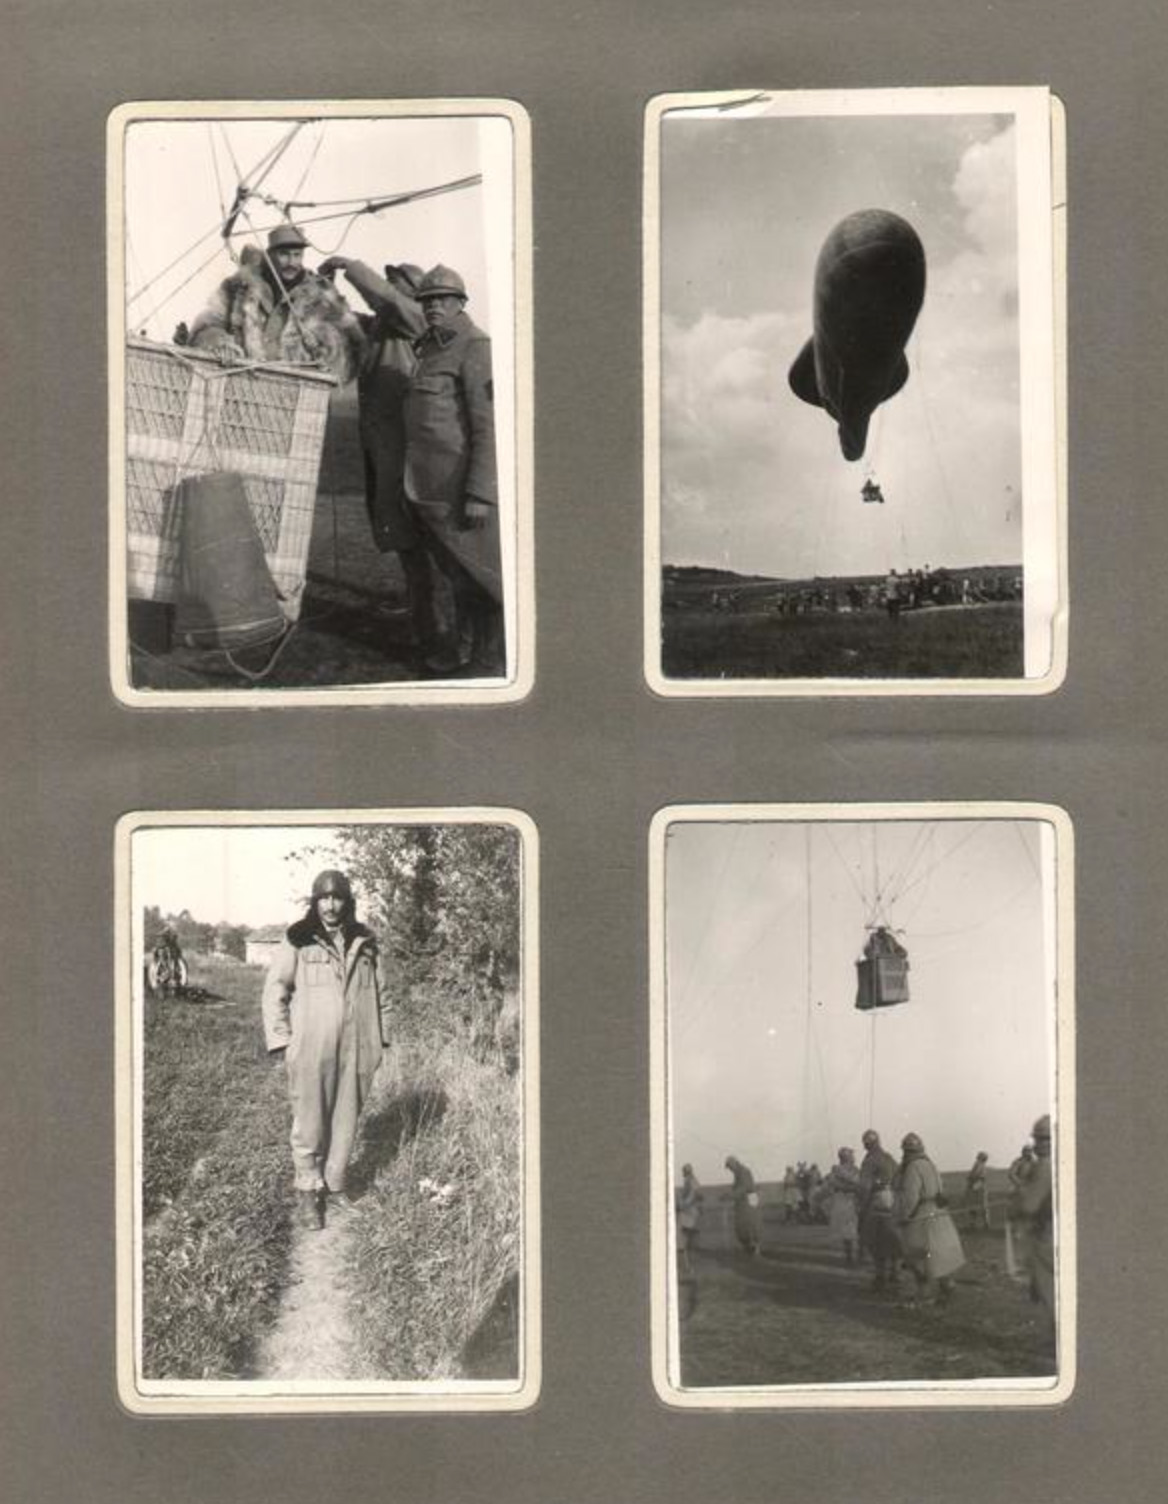 Airship, WWI. Pilot is Raymond Marabout